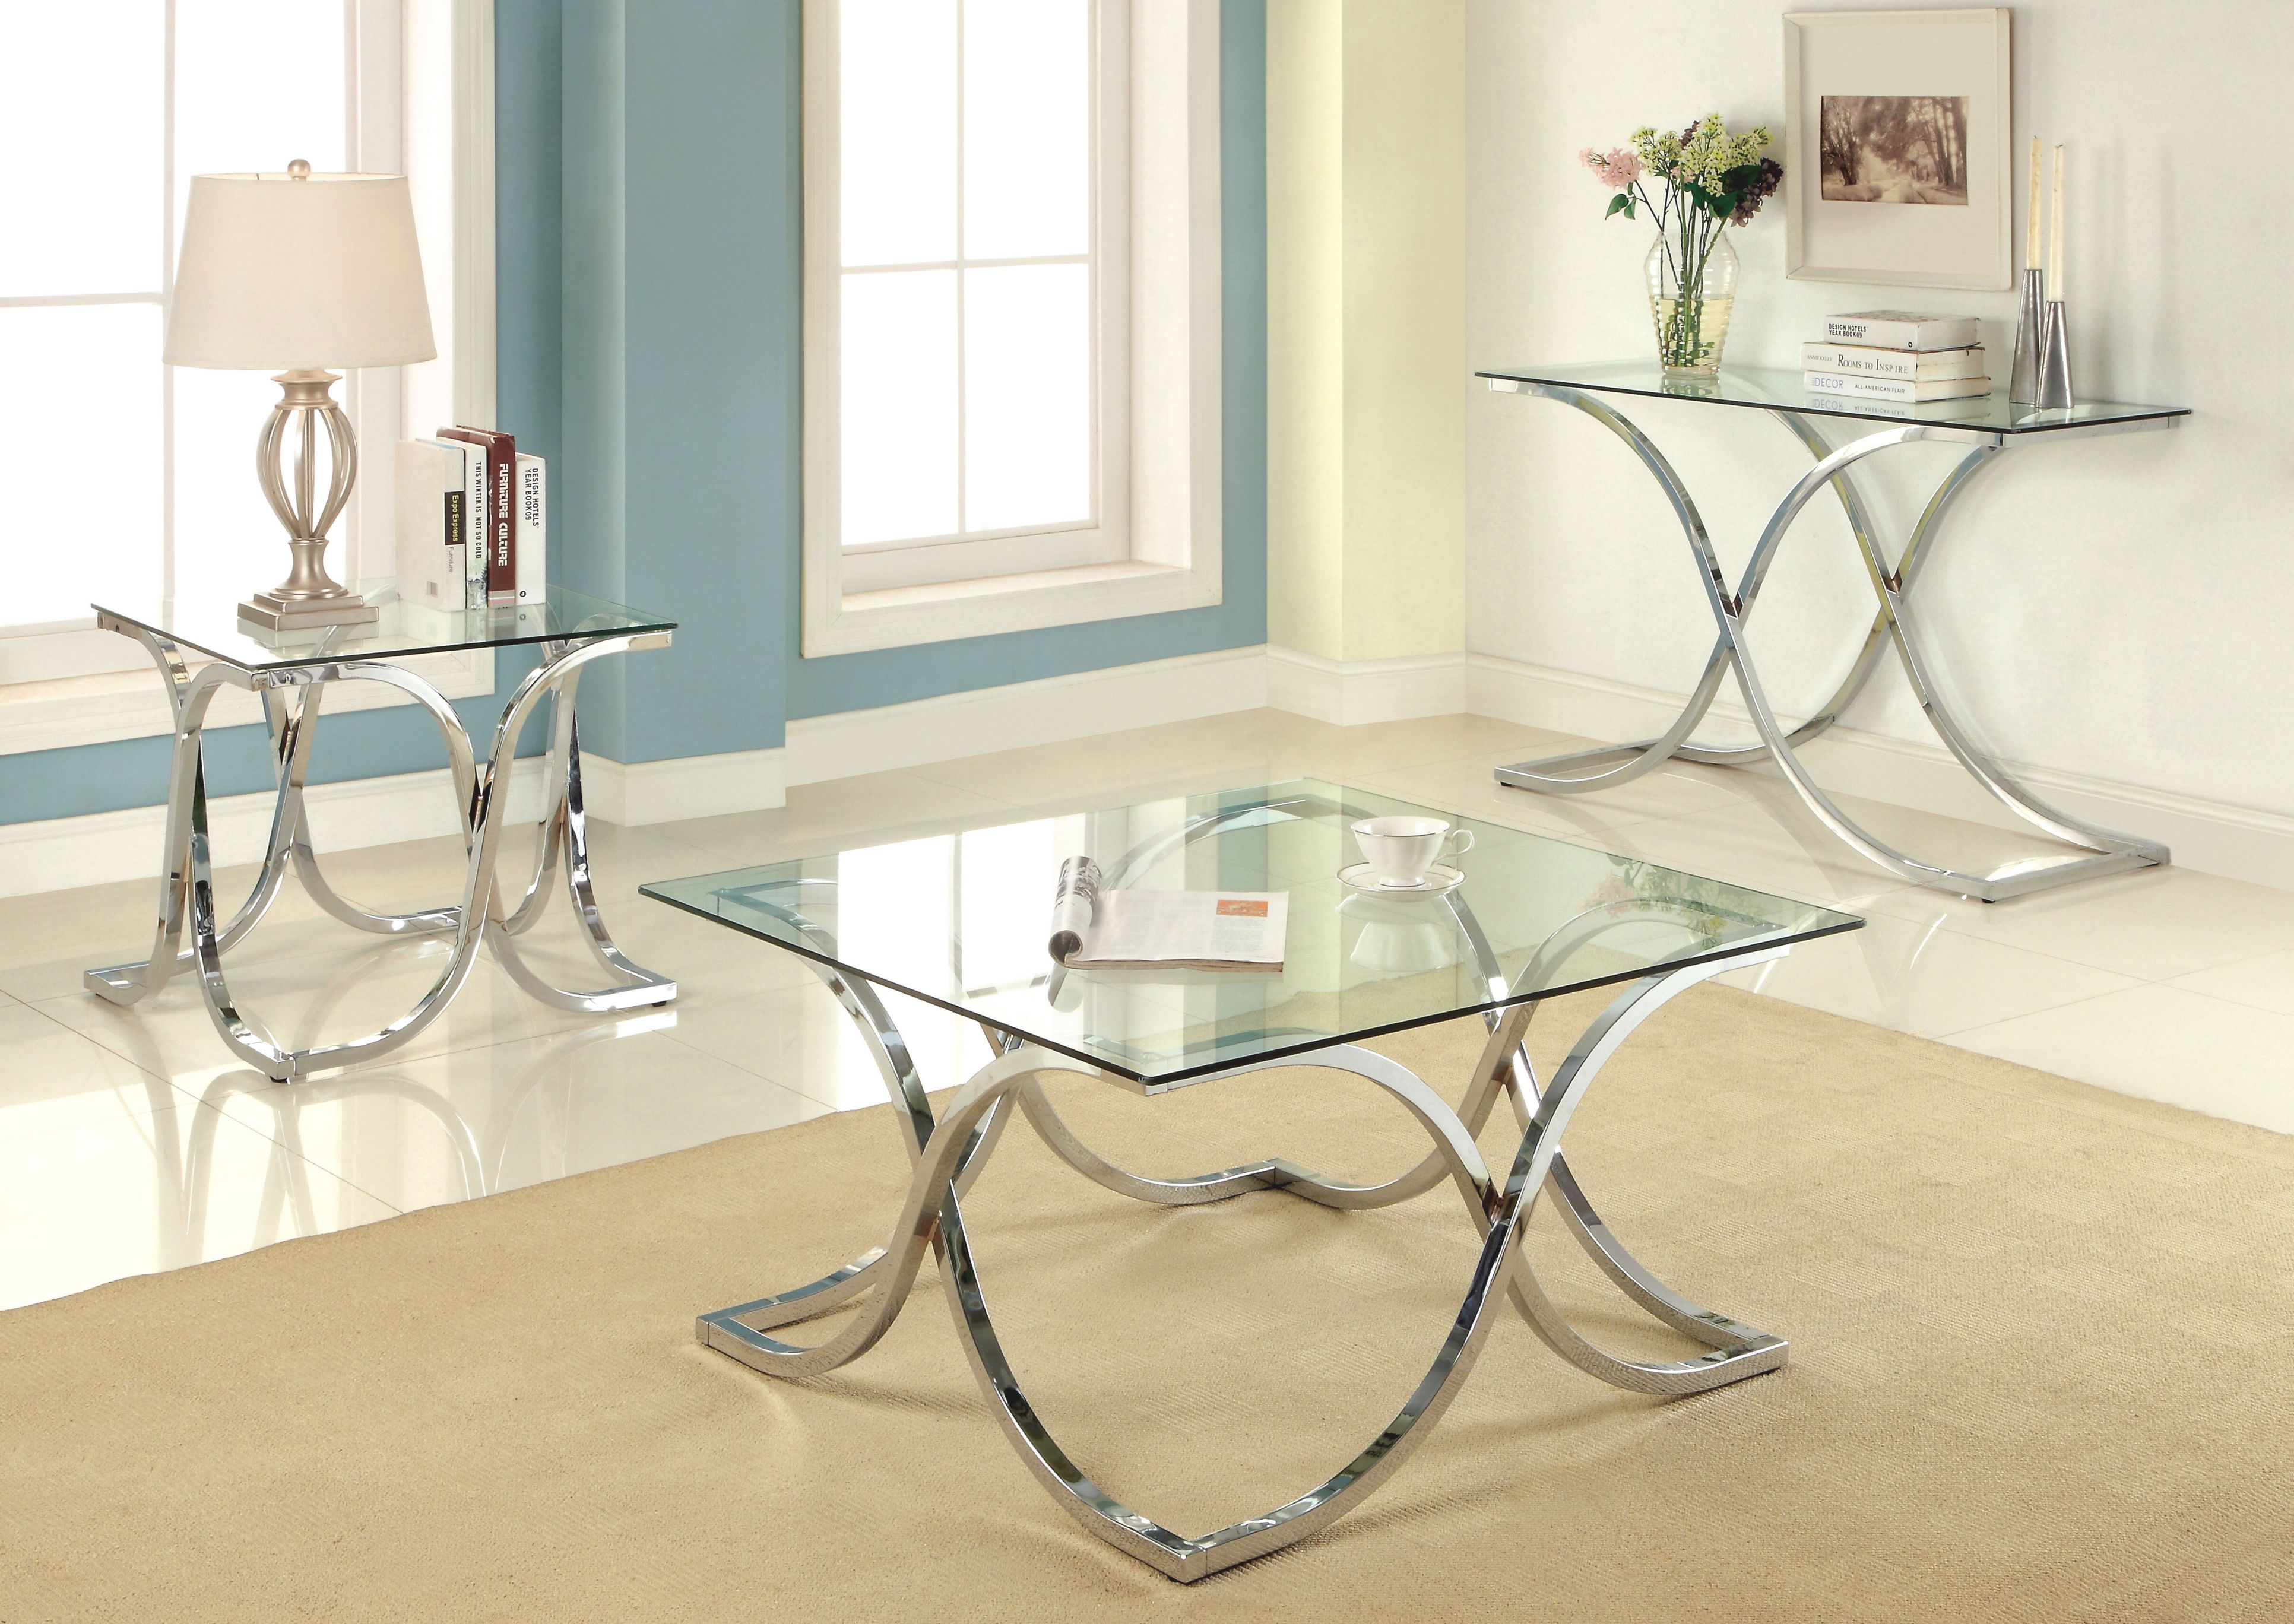 Malvern 3 Piece Coffee Table Set in 3 Piece Glass Coffee Table Set